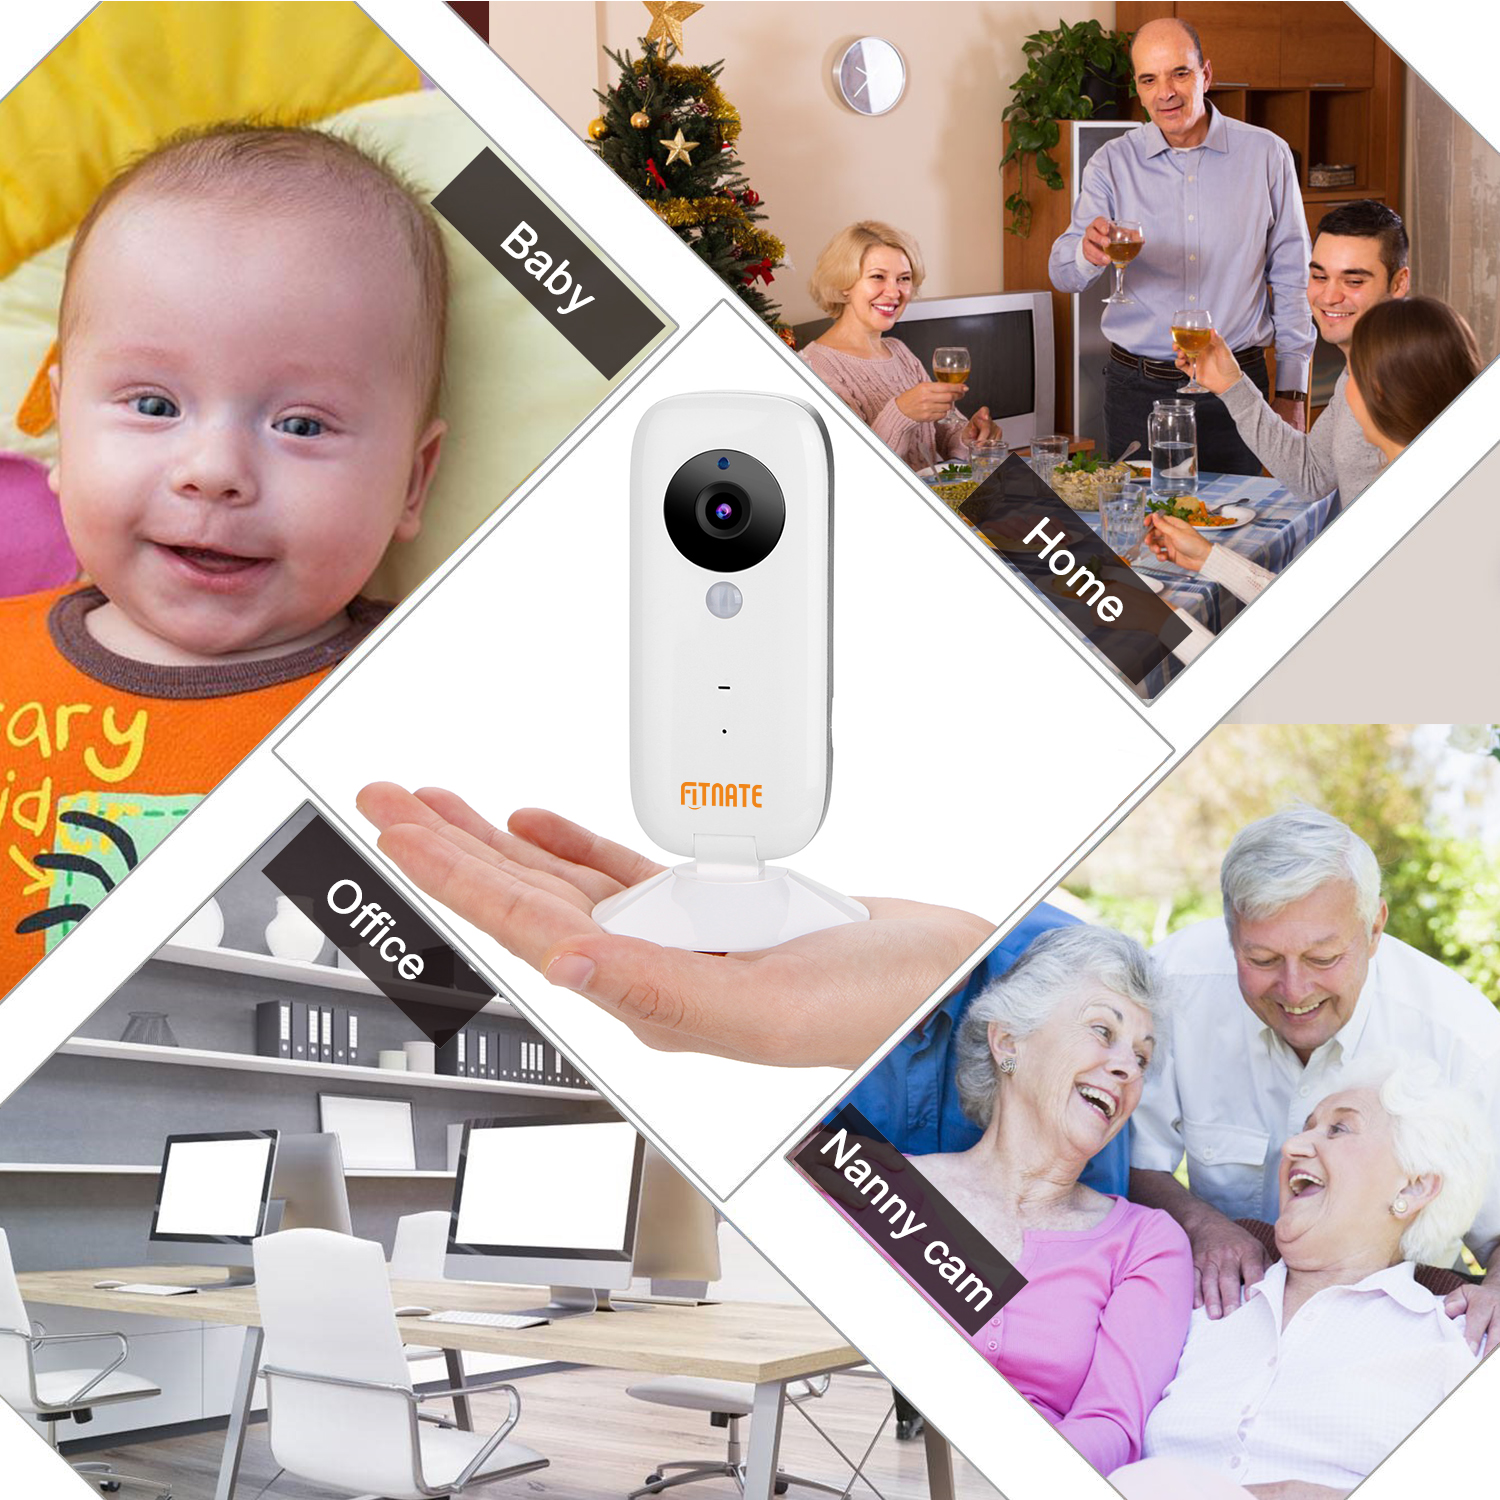 Fitnate 720P Wireless IP WiFi Security Camera Monitor w/ Night Vision & Two Way Audio for Elder Pet Nann